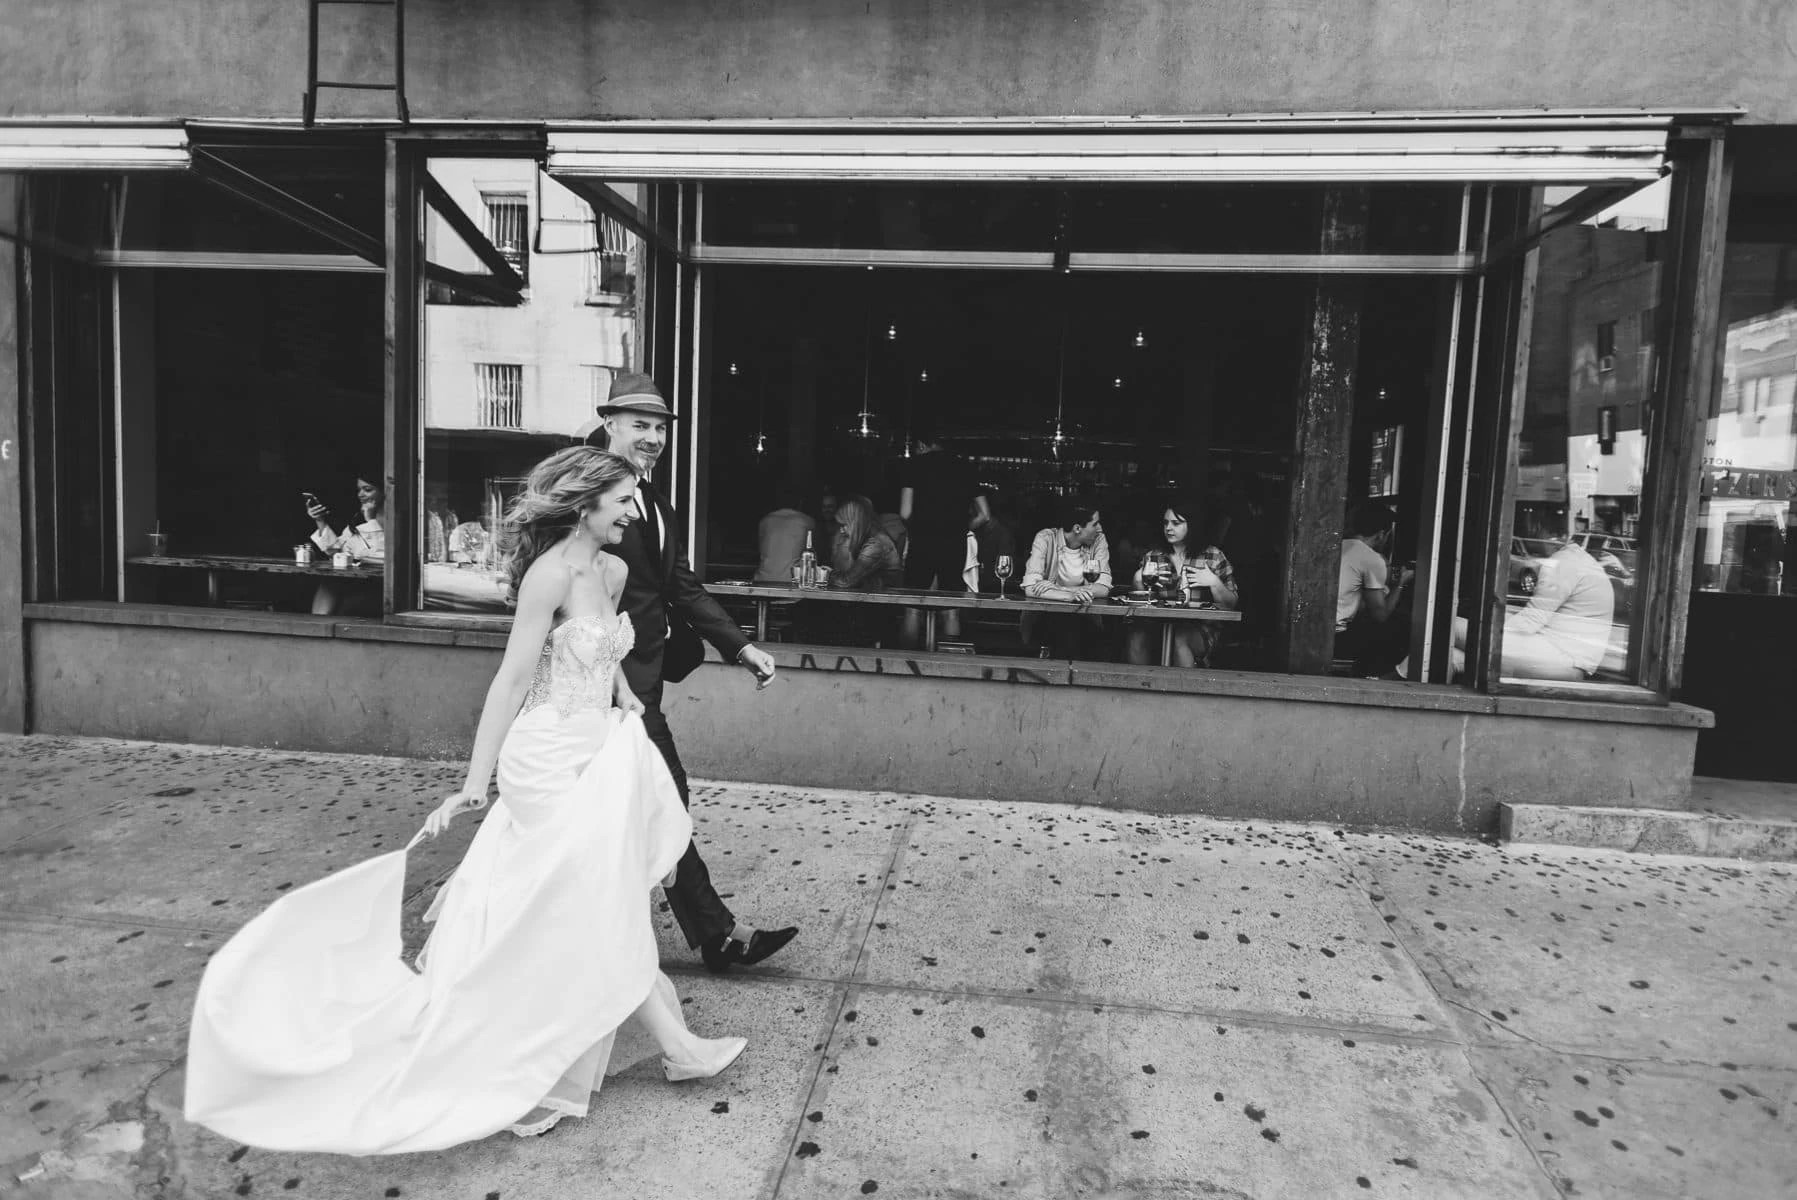 capturing the moment of the wedding in East Village